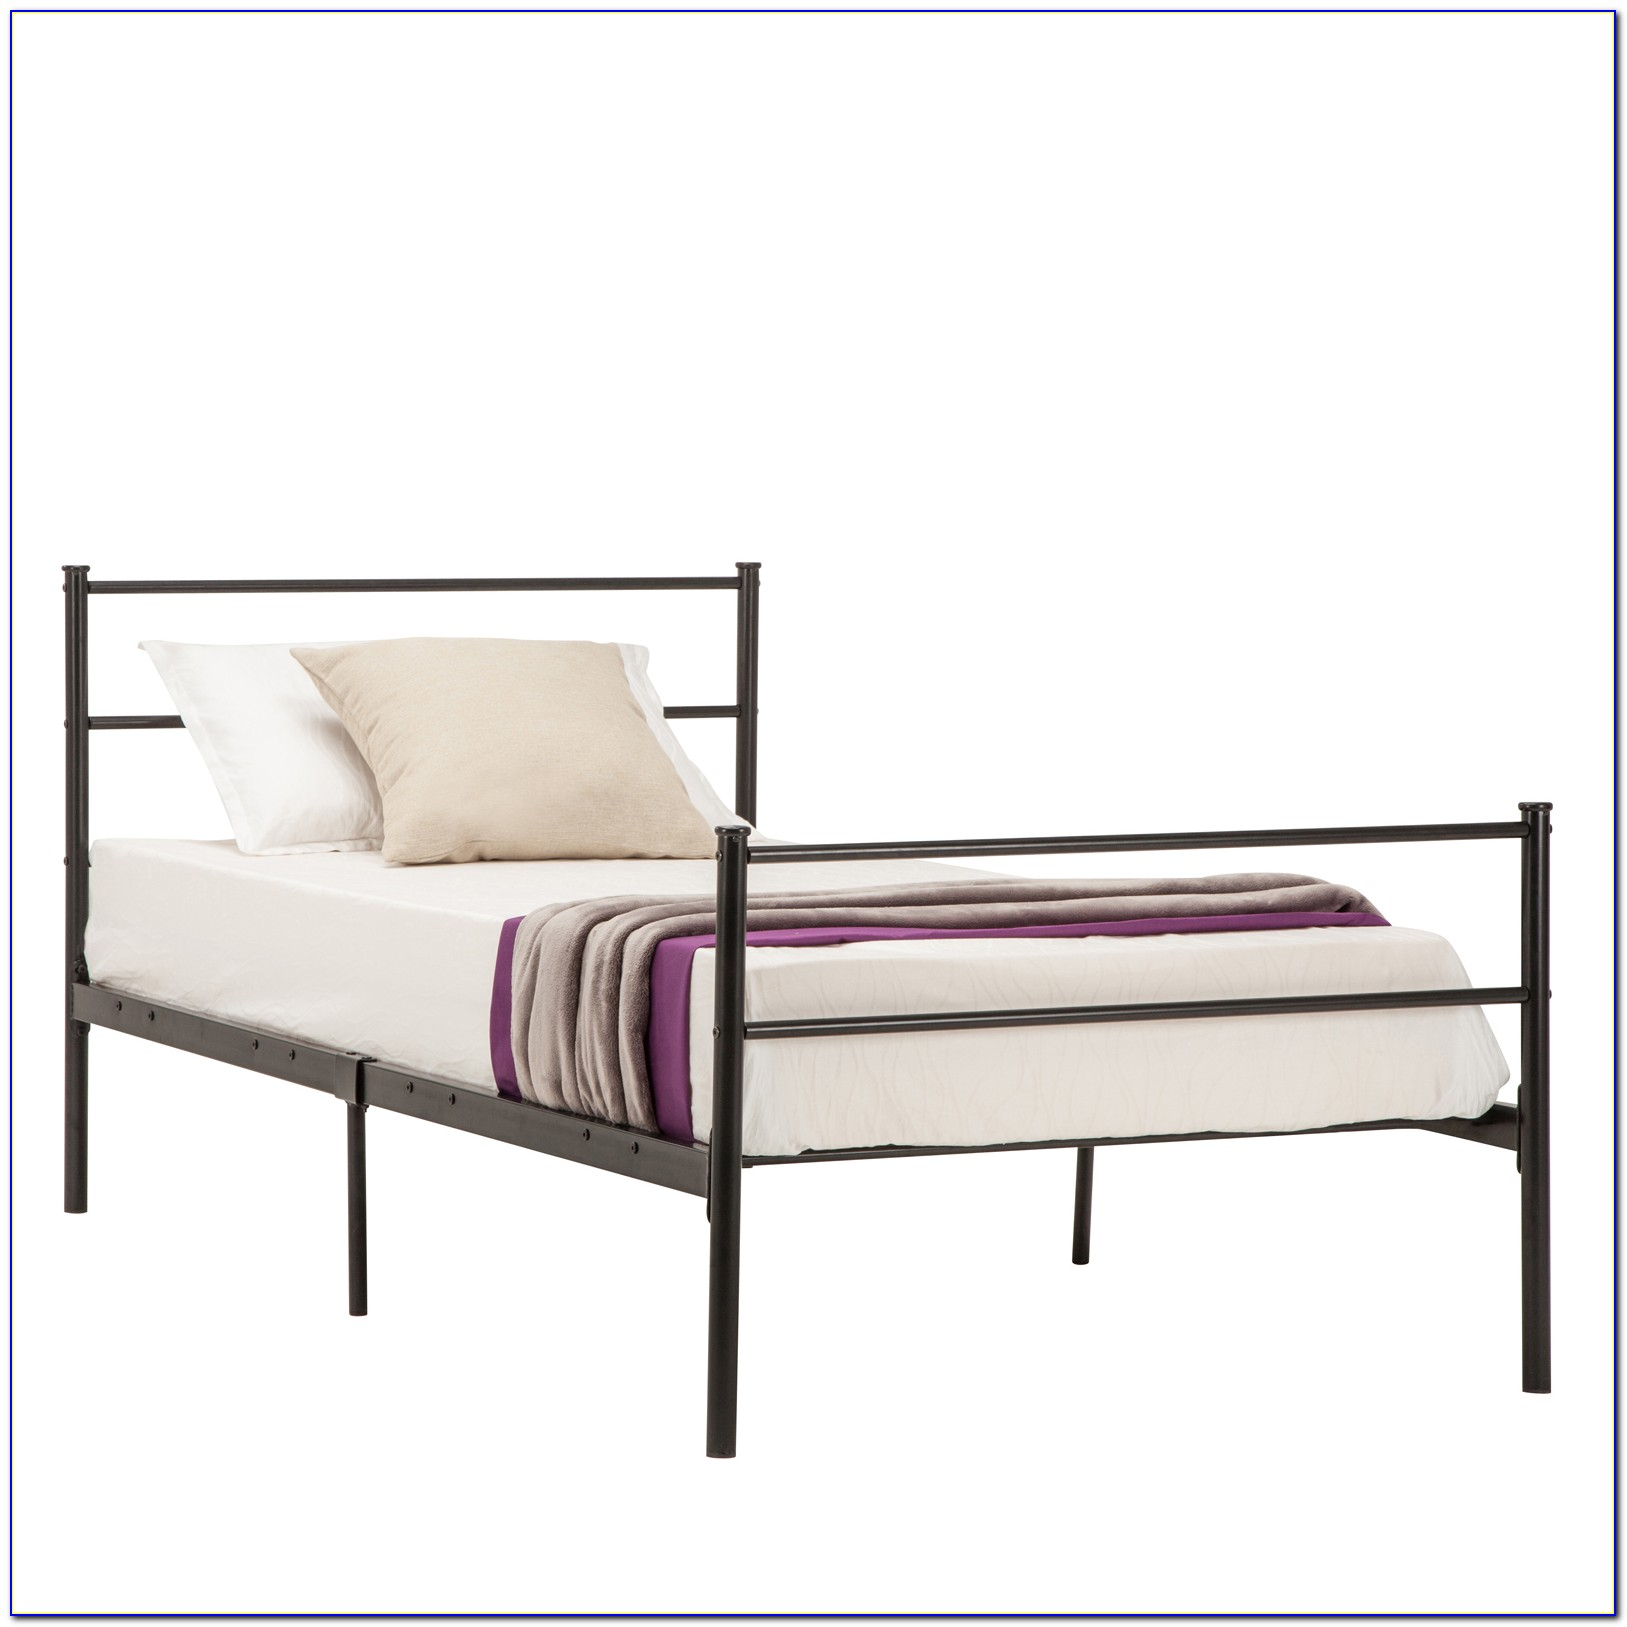 Twin Size Metal Bed Headboard & Footboard